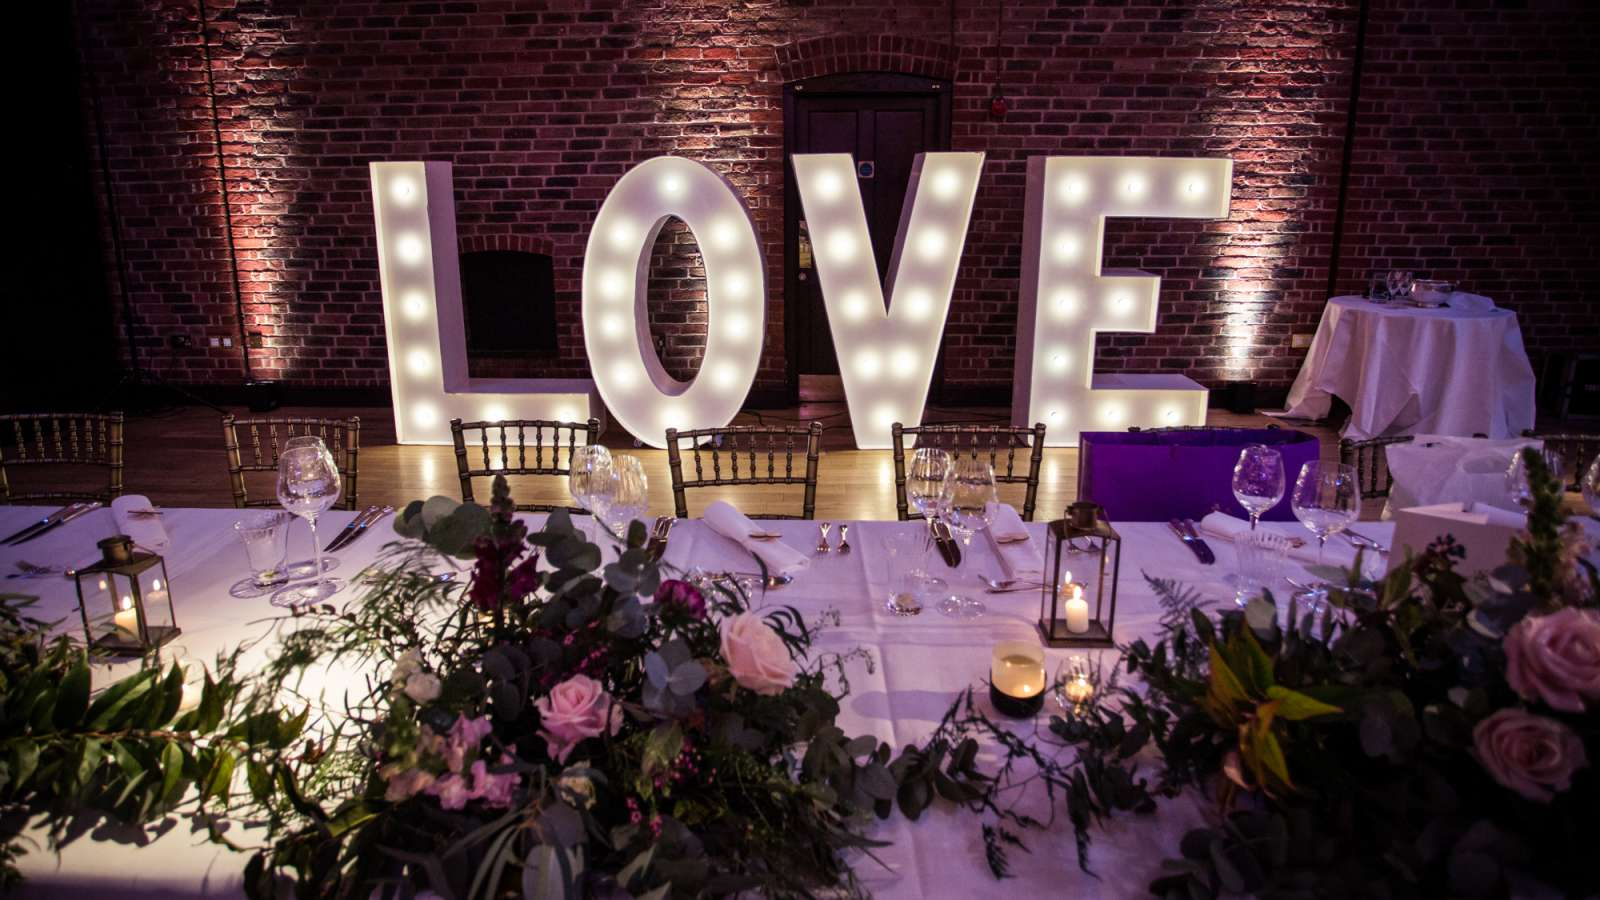 Light Up LOVE at The Brewery - Photo by Blake Ezra